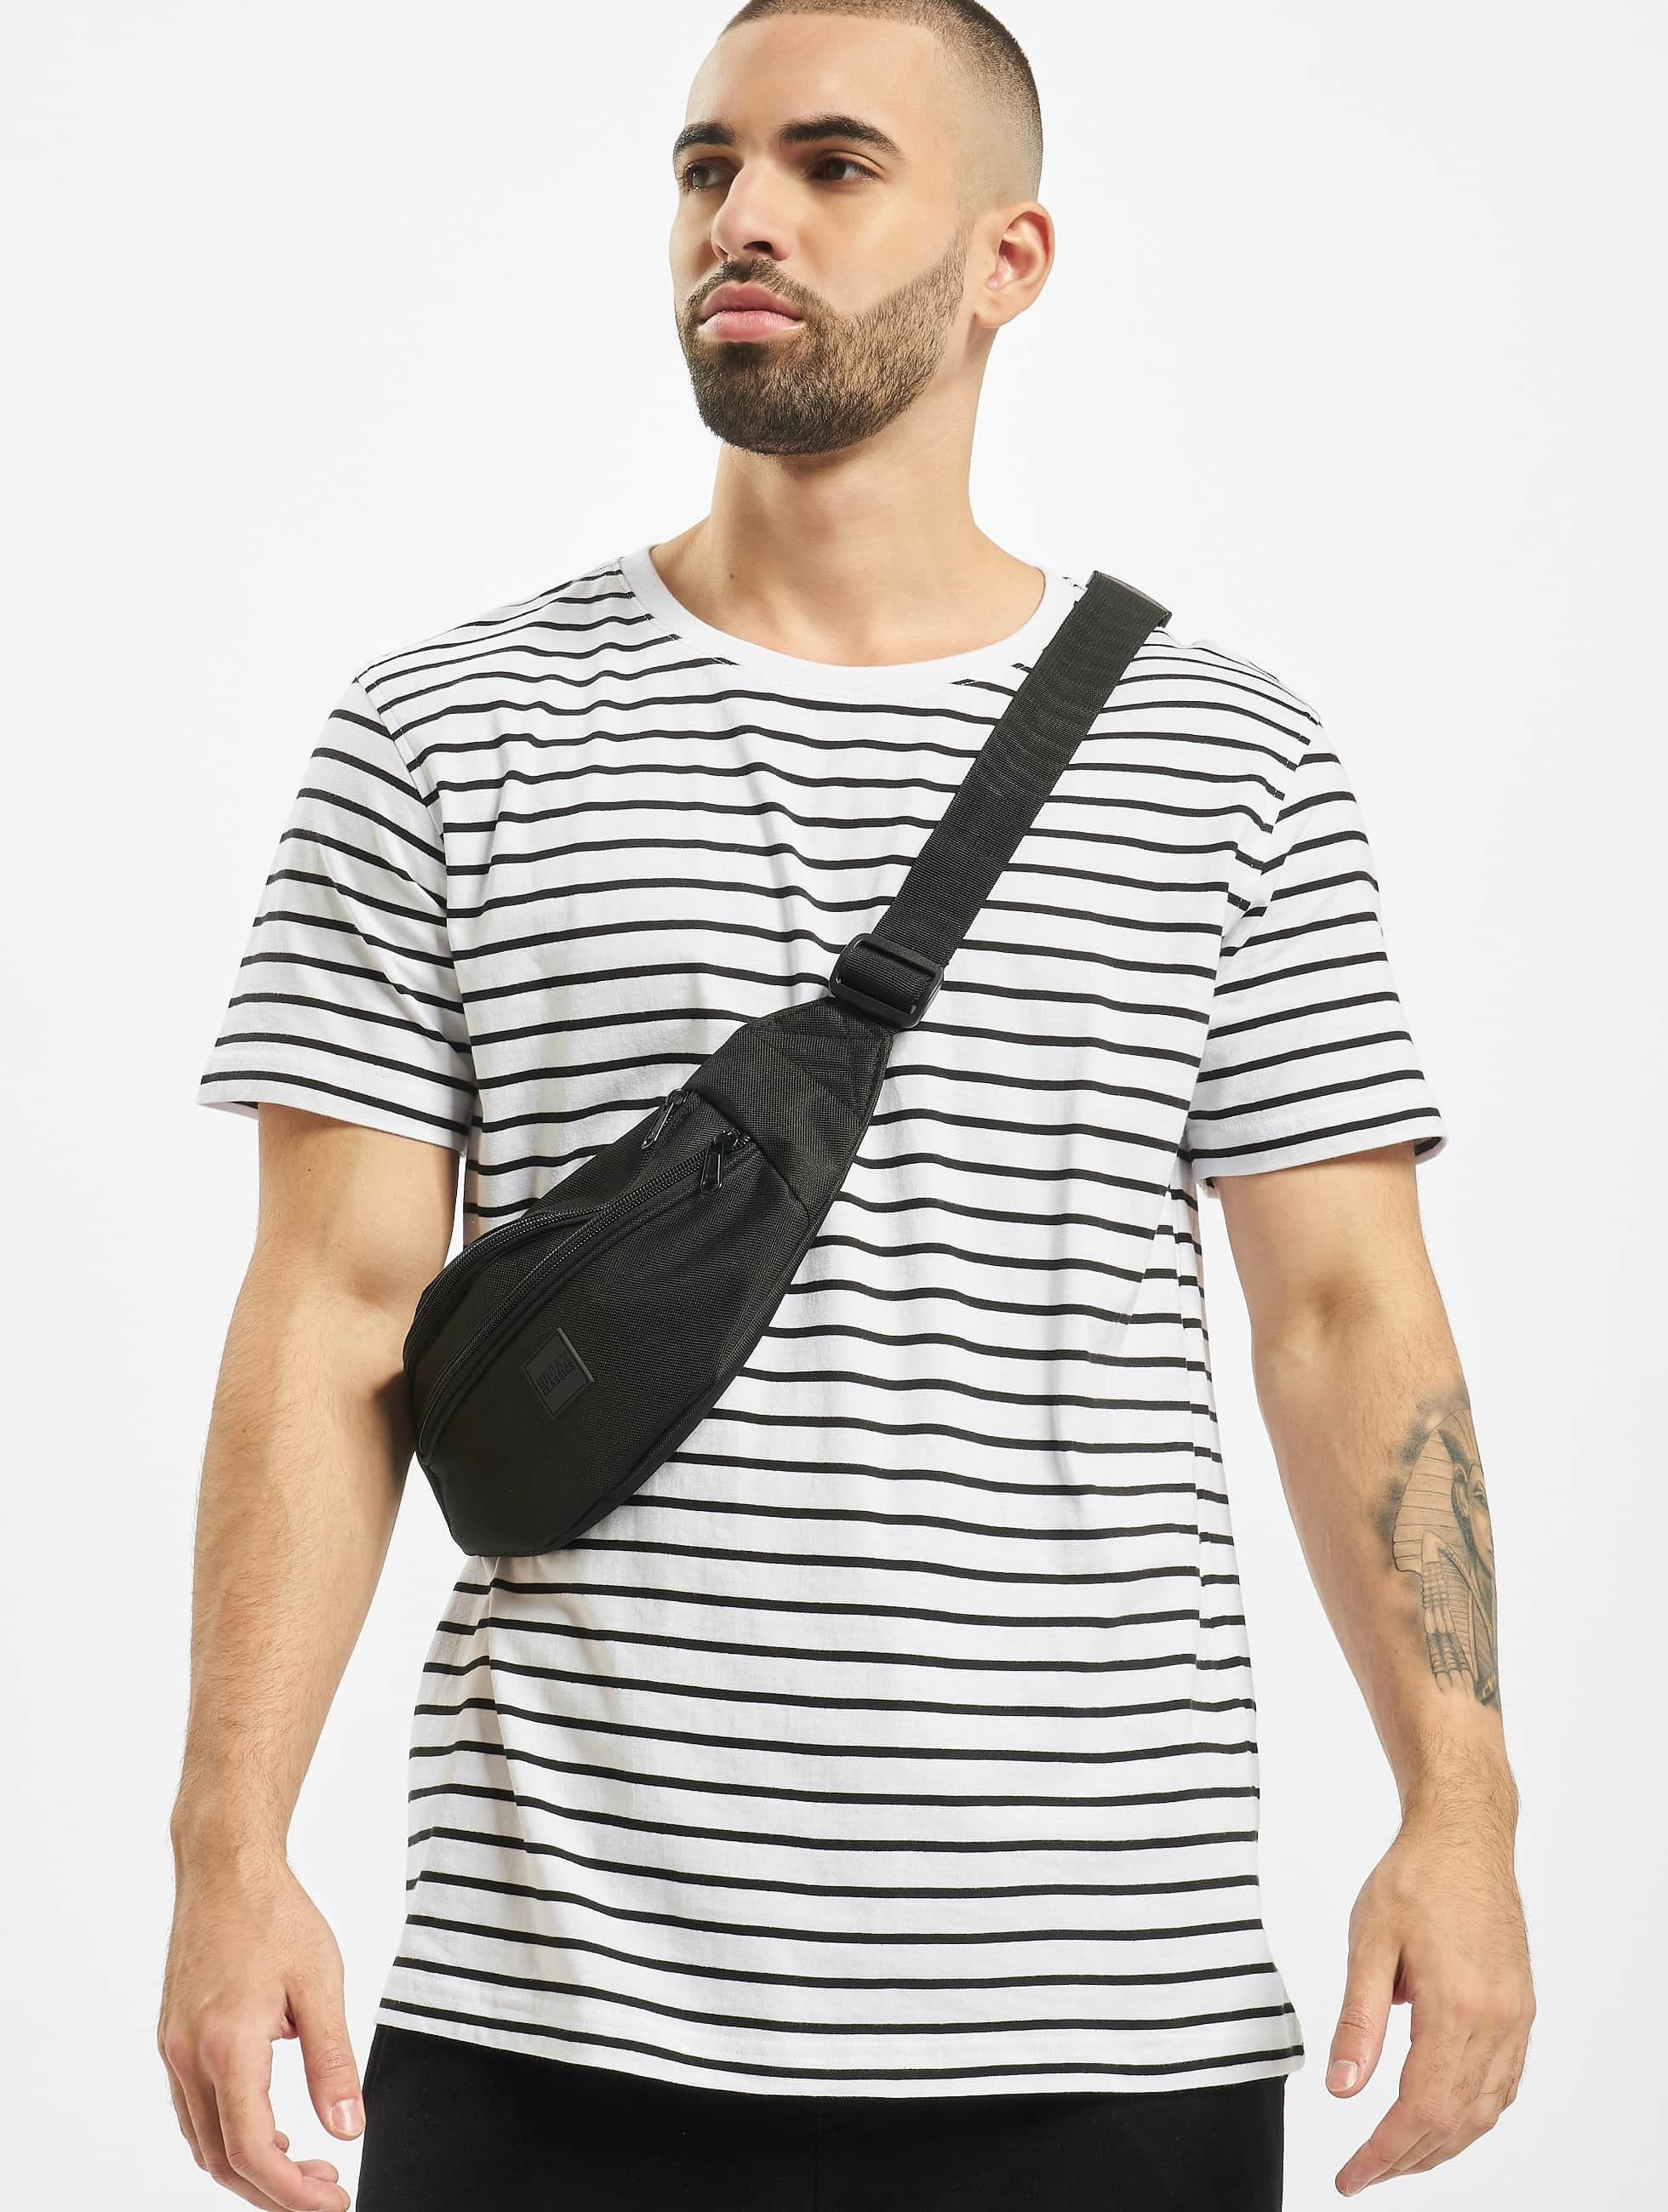 Urban-Classics-Uomini-Maglieria-T-shirt-Striped